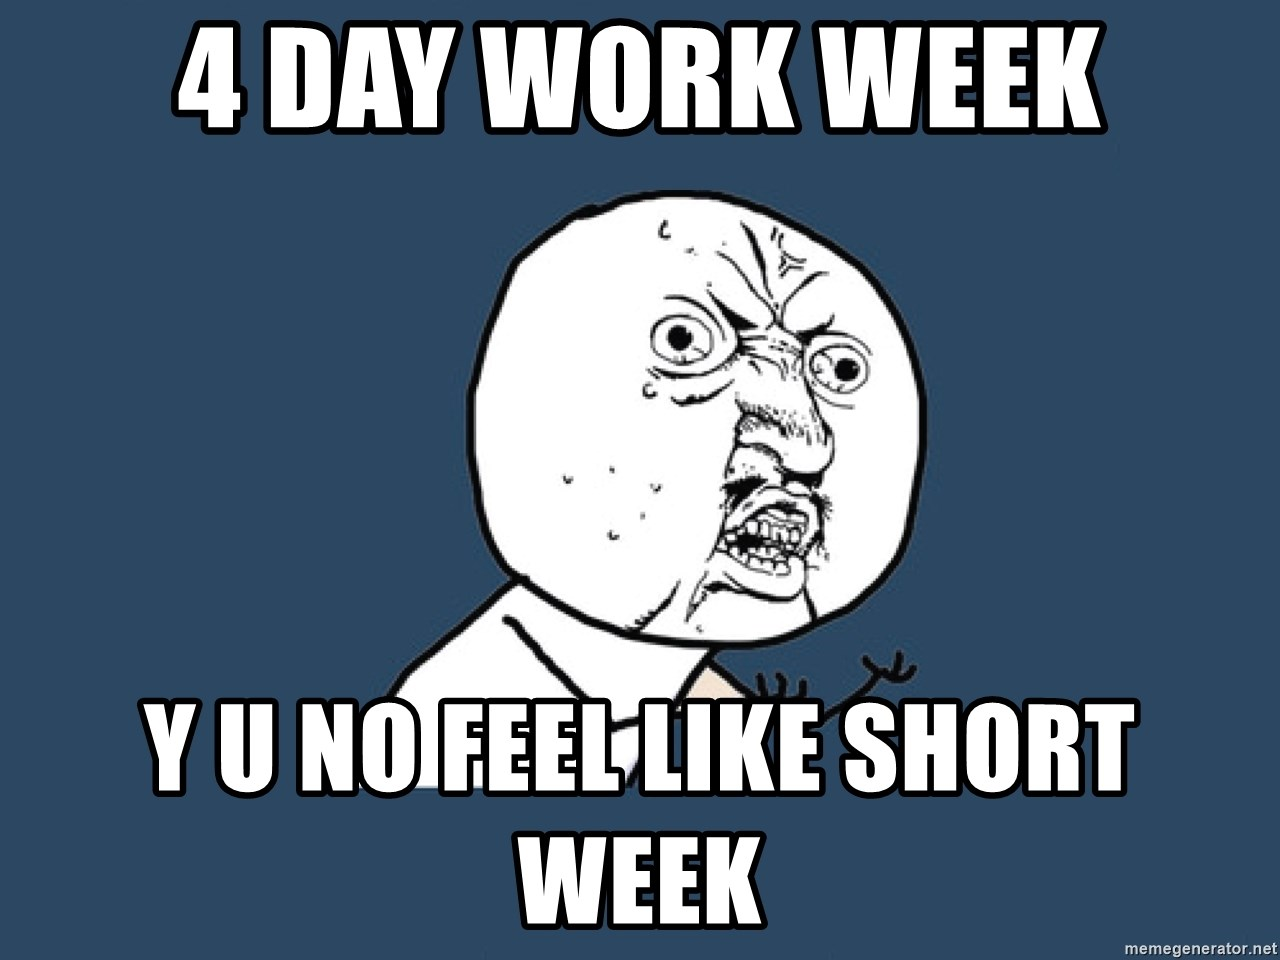 Y U No - 4 DAY WORK WEEK Y U NO FEEL LIKE SHORT WEEK